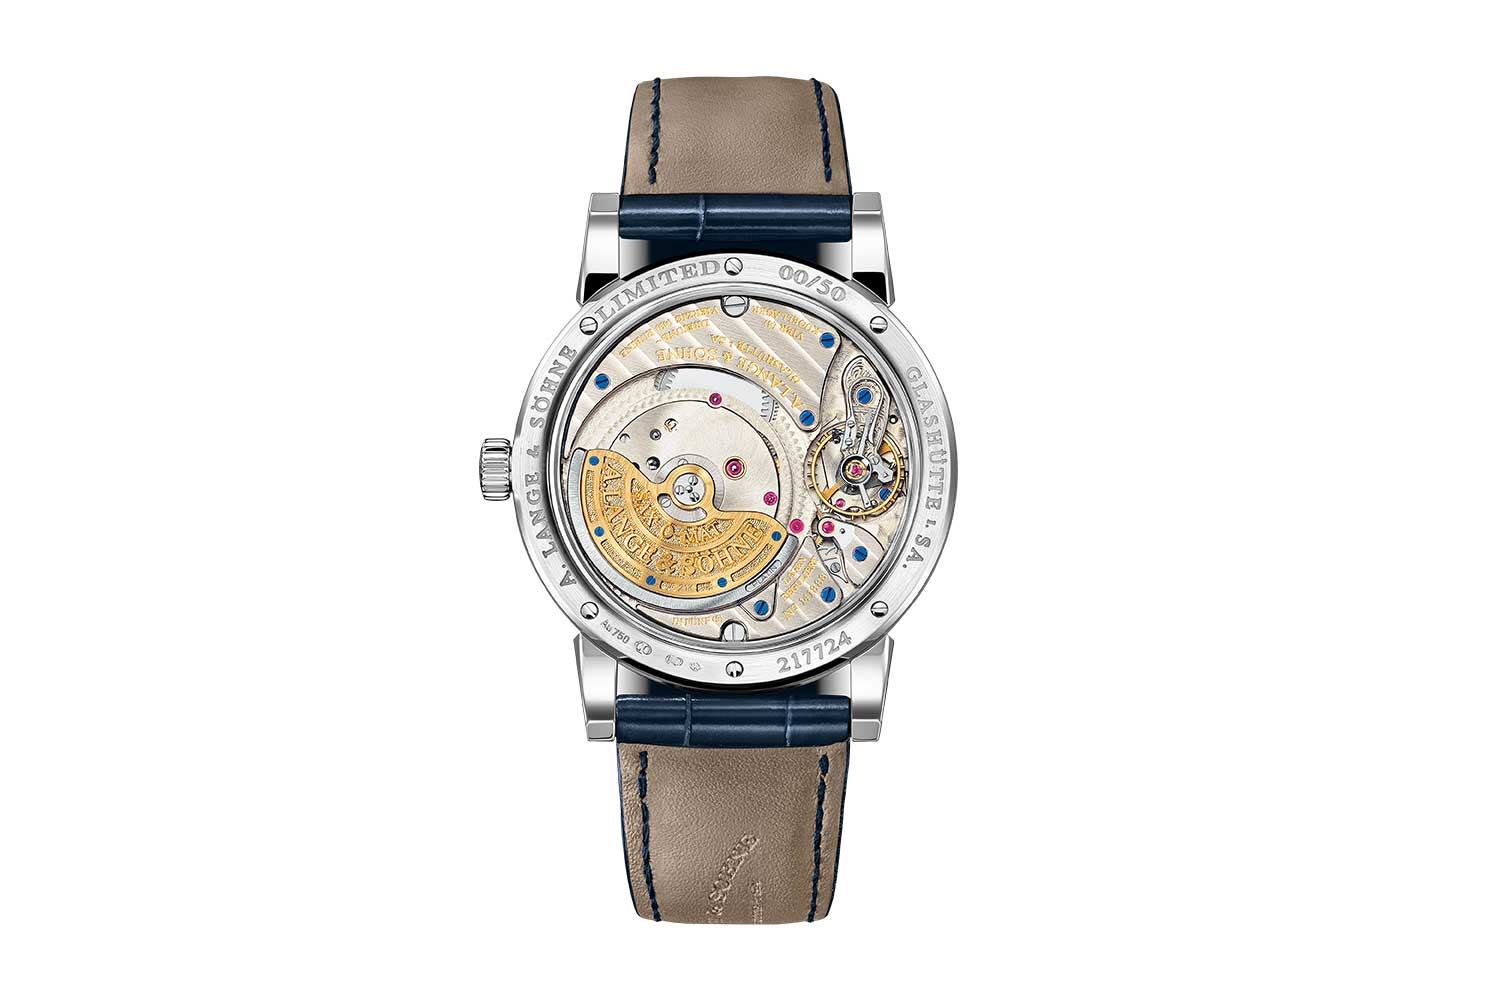 The 2021 Langematik Perpetual in white gold with blue dial – ref. 310.028